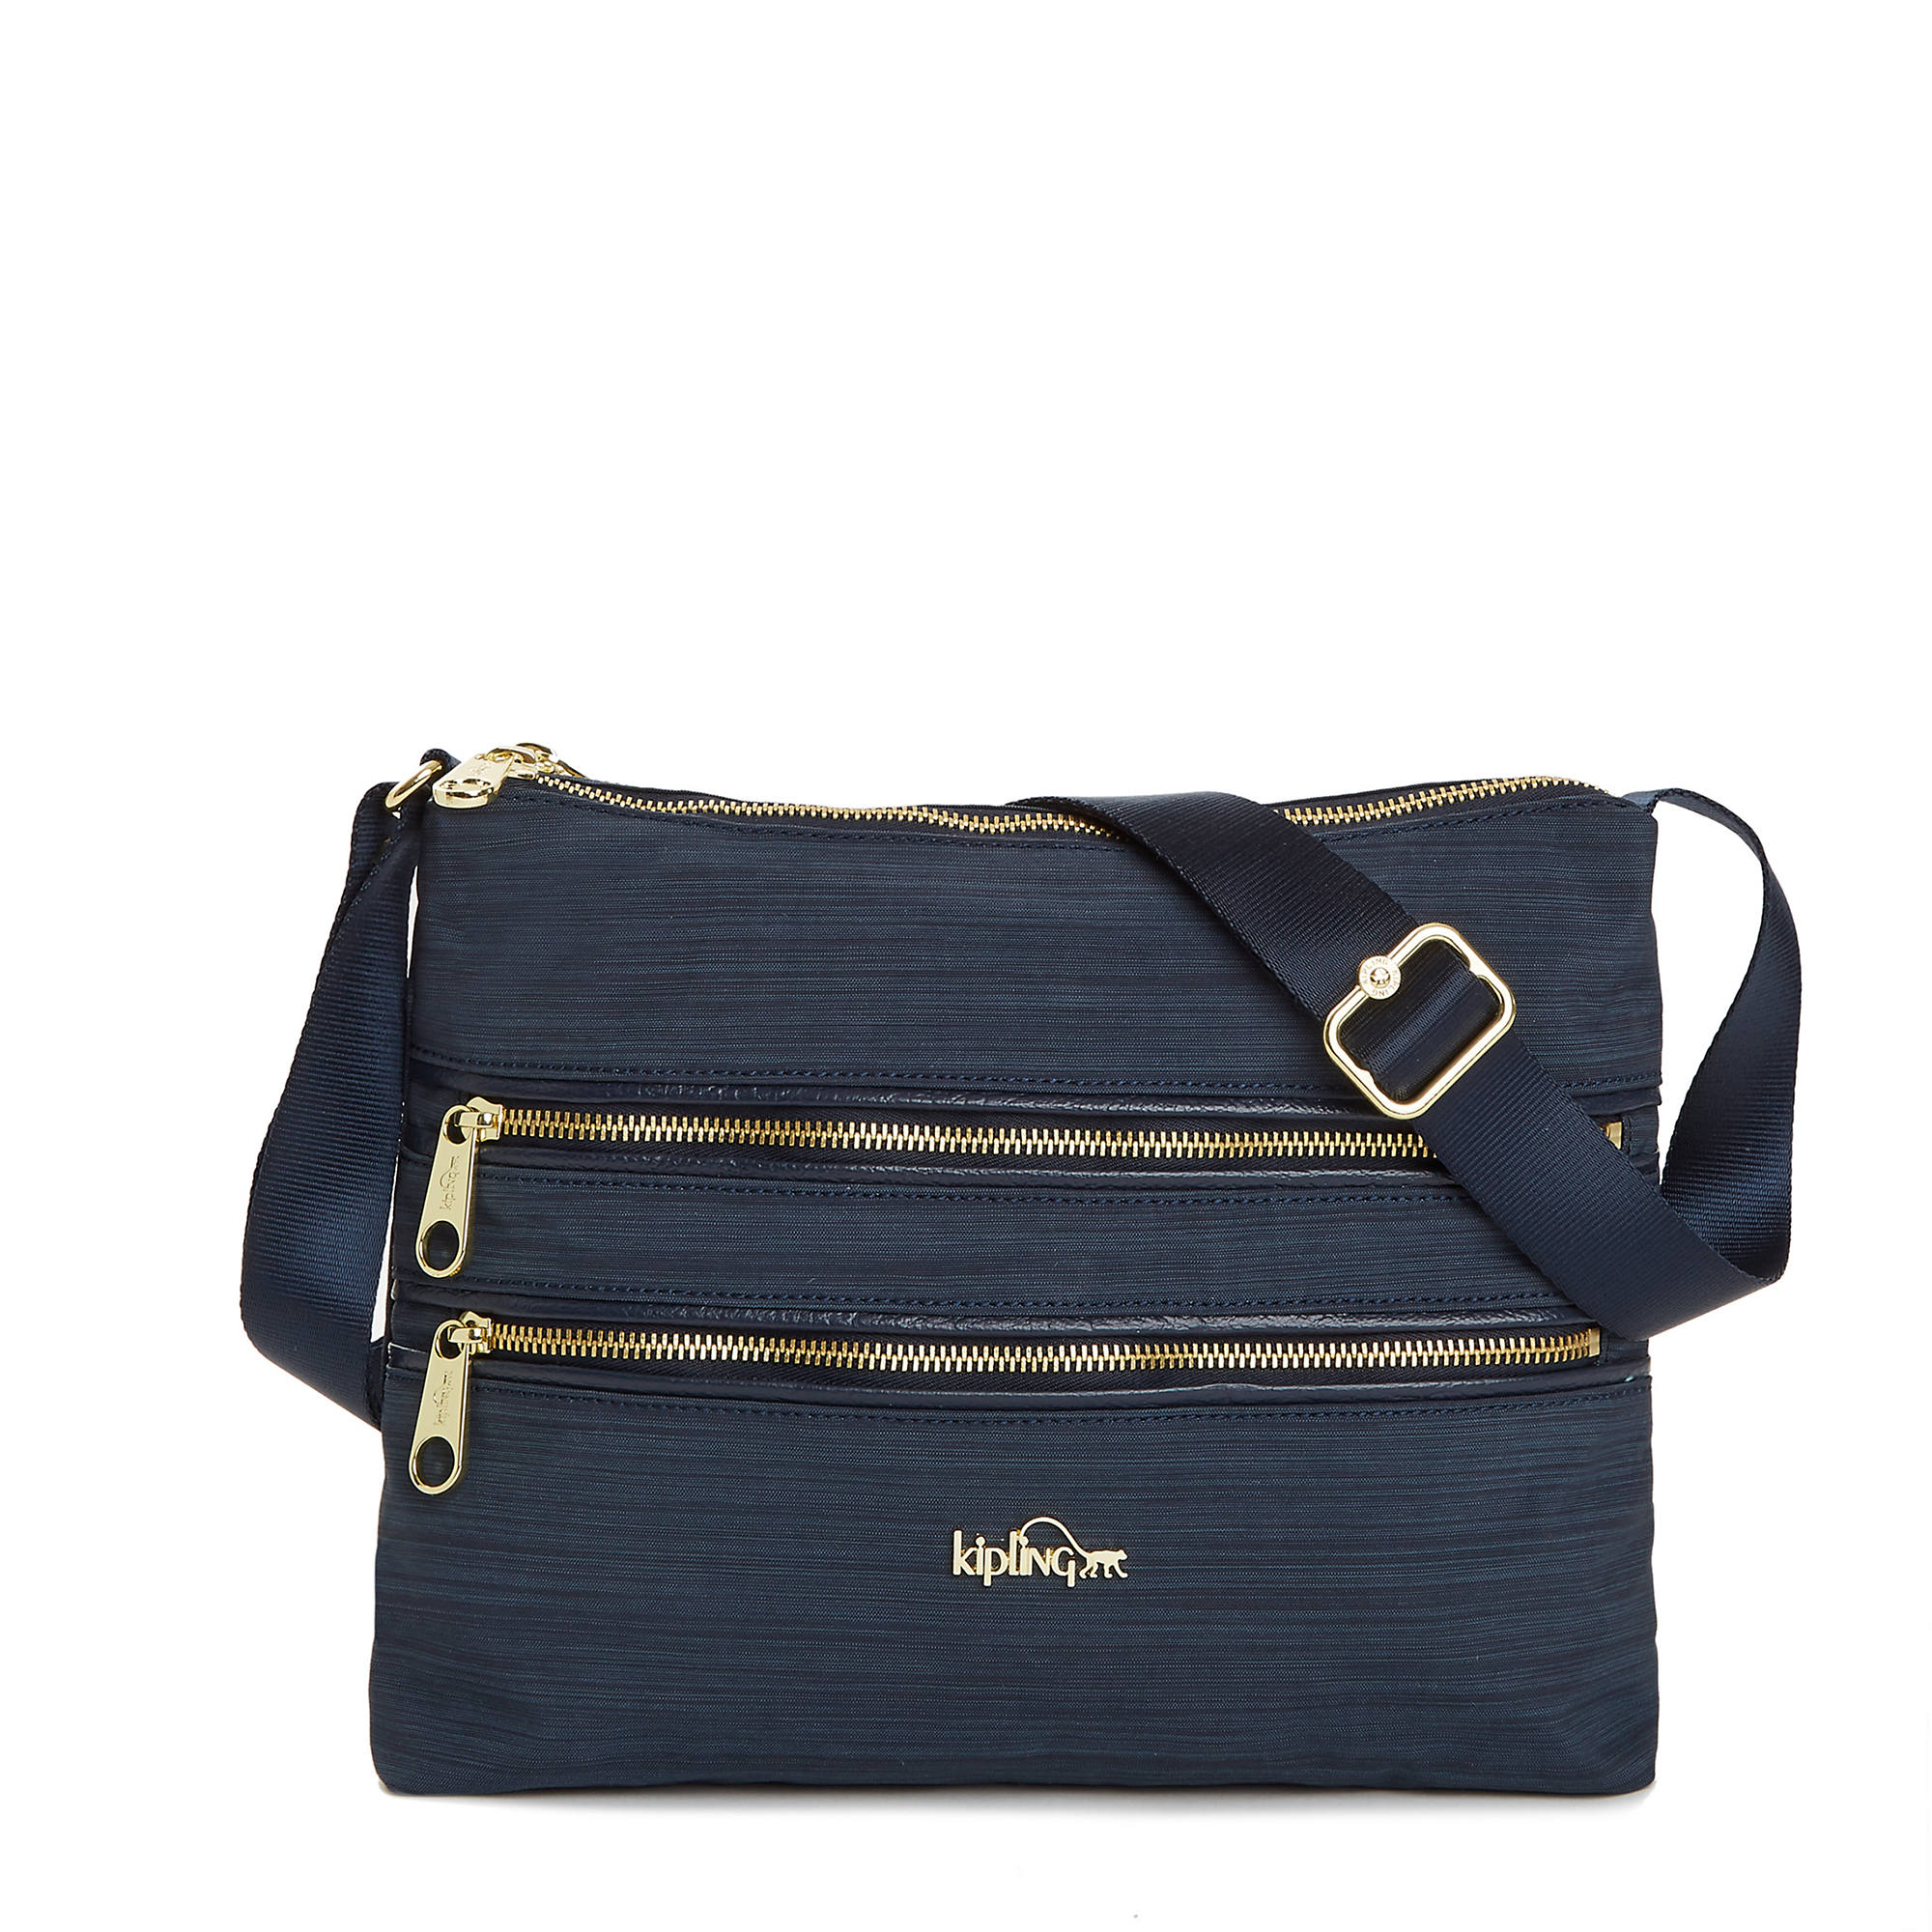 7067807de8ee1 Alvar Crossbody Bag,True Dazz Navy,large